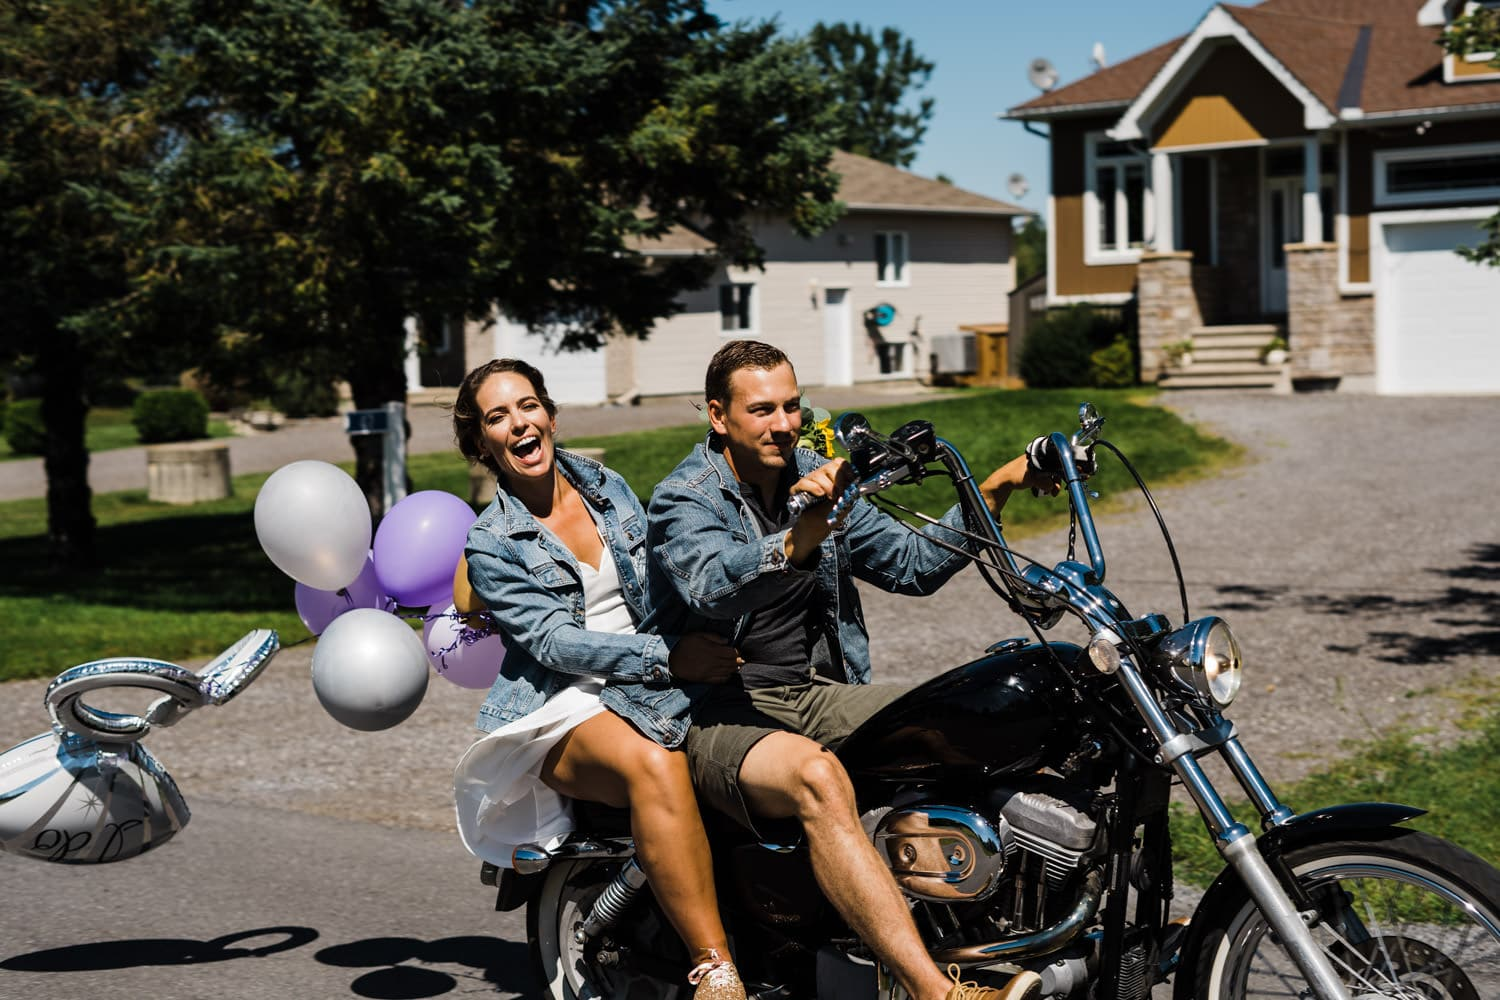 couple celebrate with motorcycle ride after backyard wedding